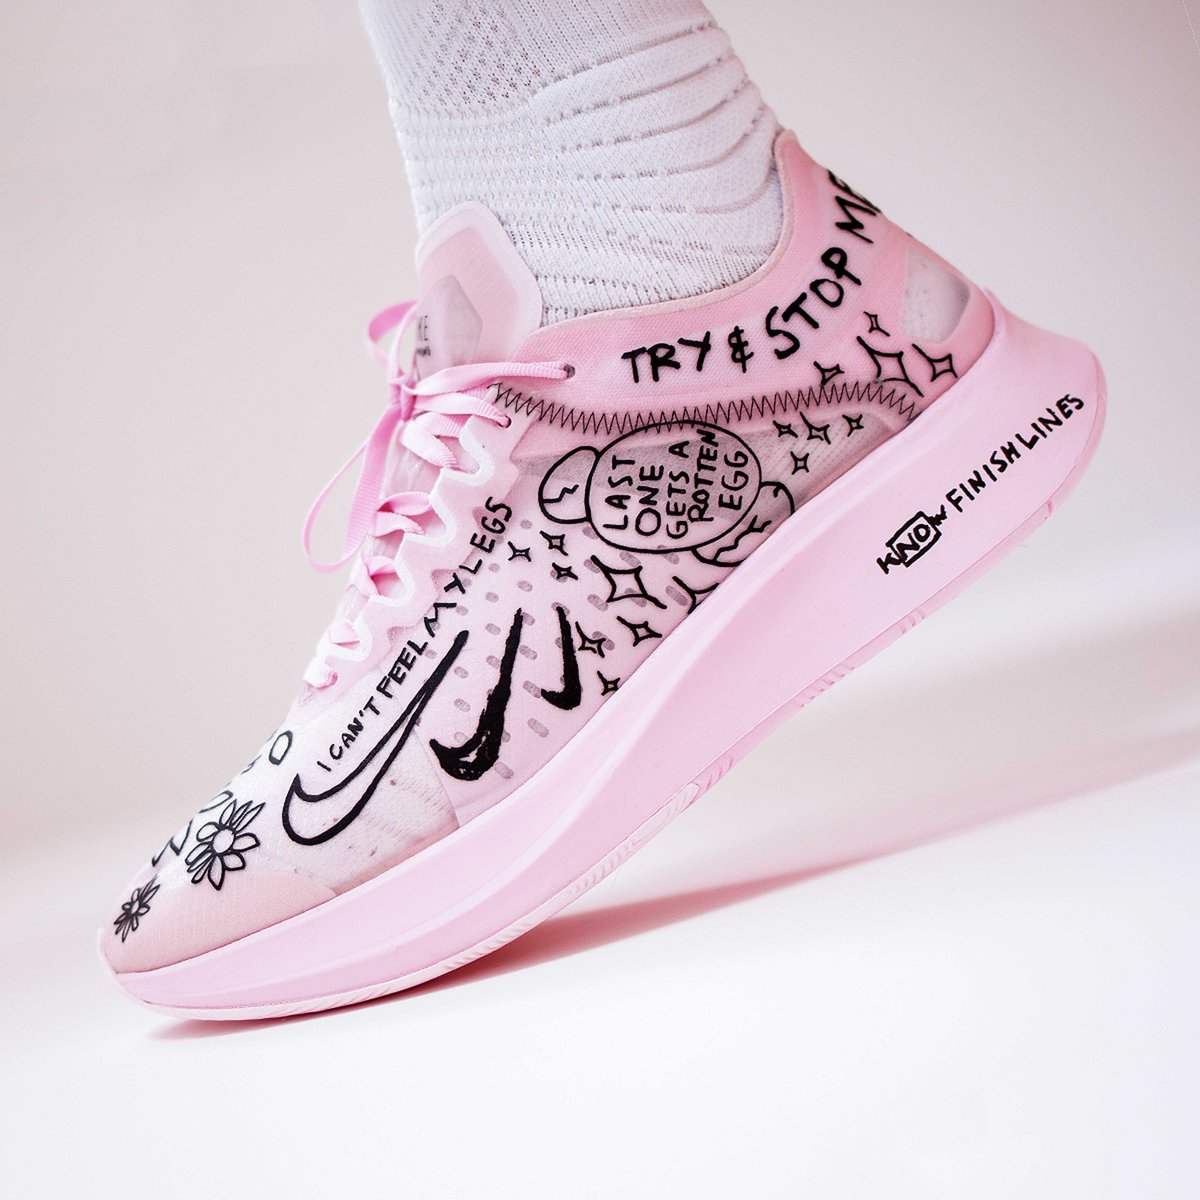 NATHAN BELL X NIKE ZOOM FLY SP $112.50